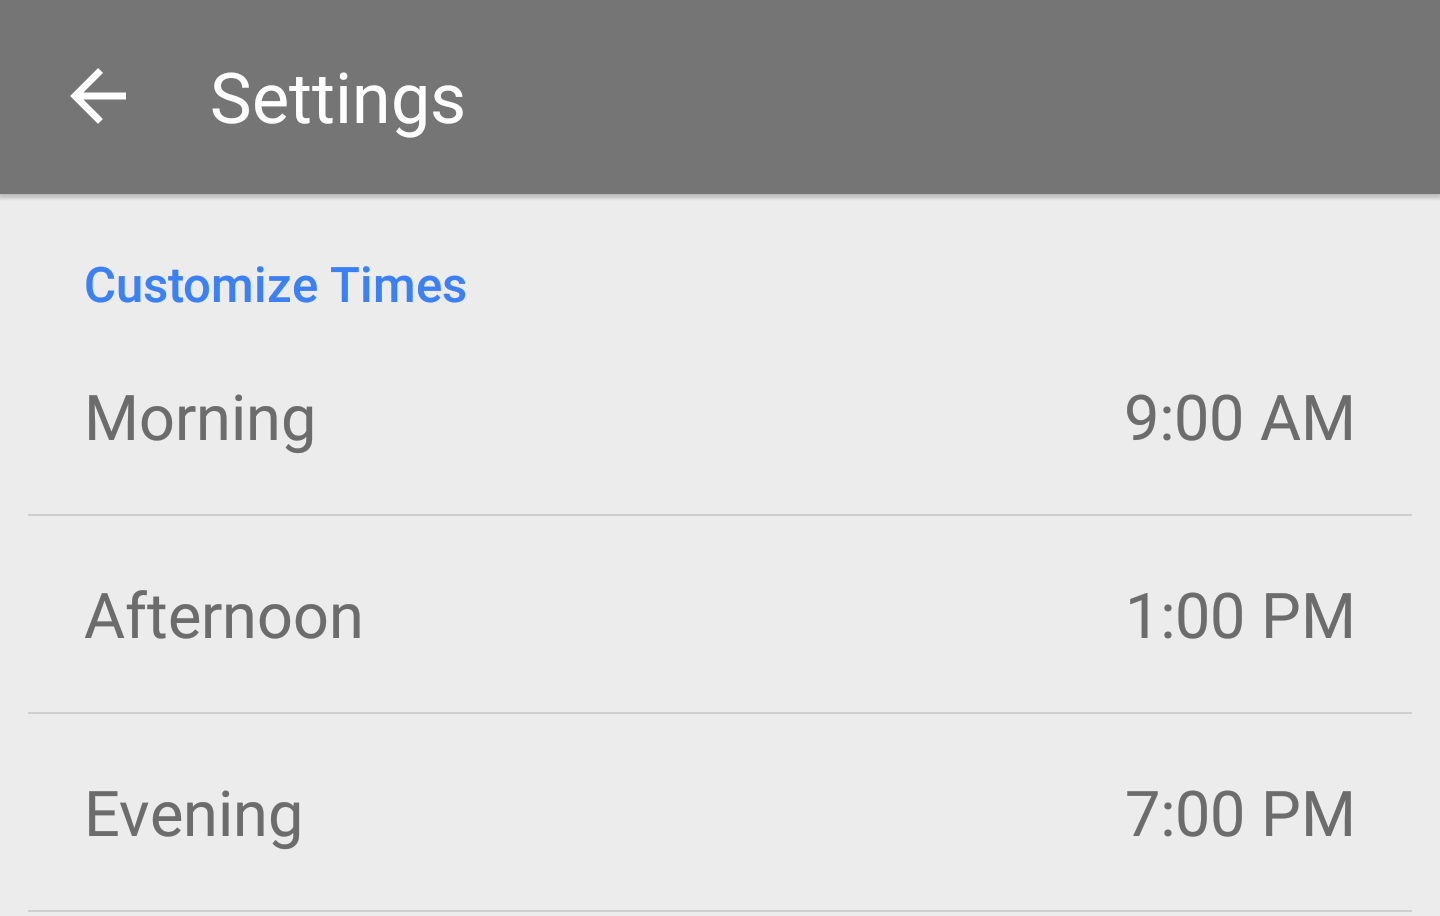 Google brings custom snooze times and other perks to Inbox